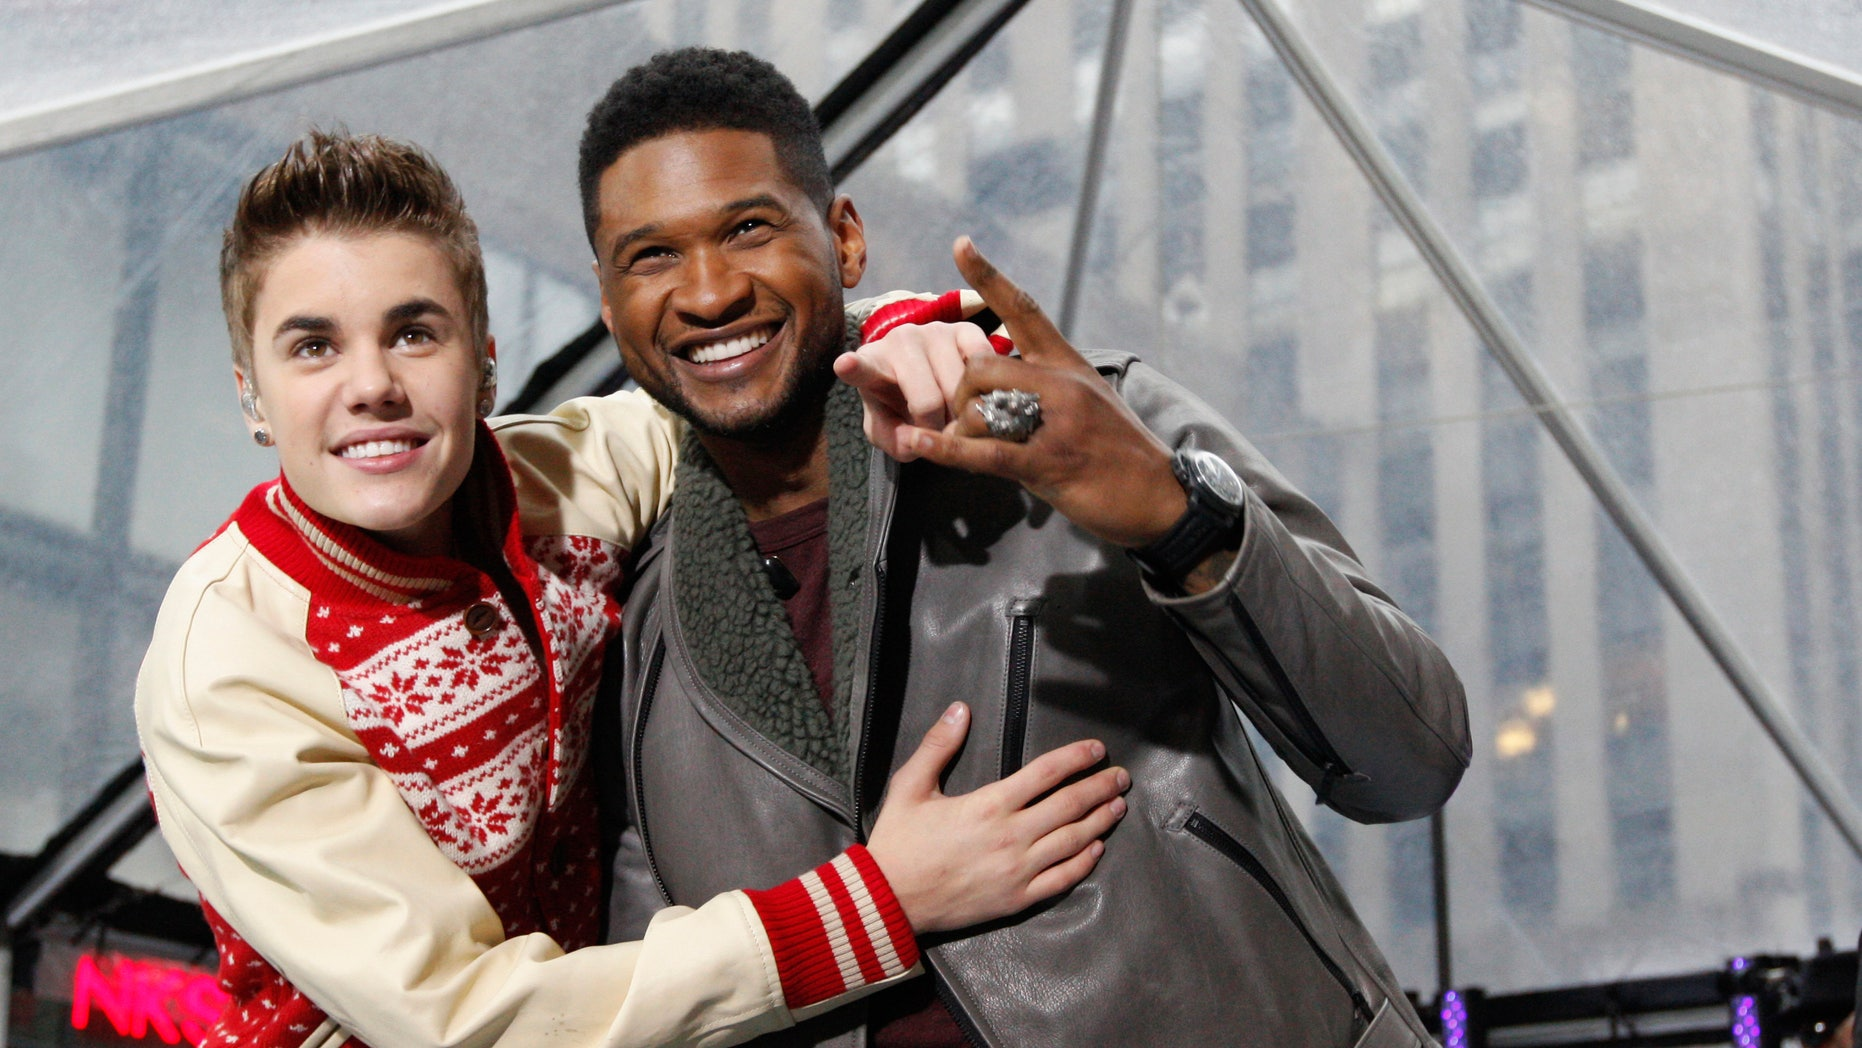 """November 23, 2011. Singers Justin Bieber and Usher (R) pose together after performing on NBC's """"Today"""" show in New York."""